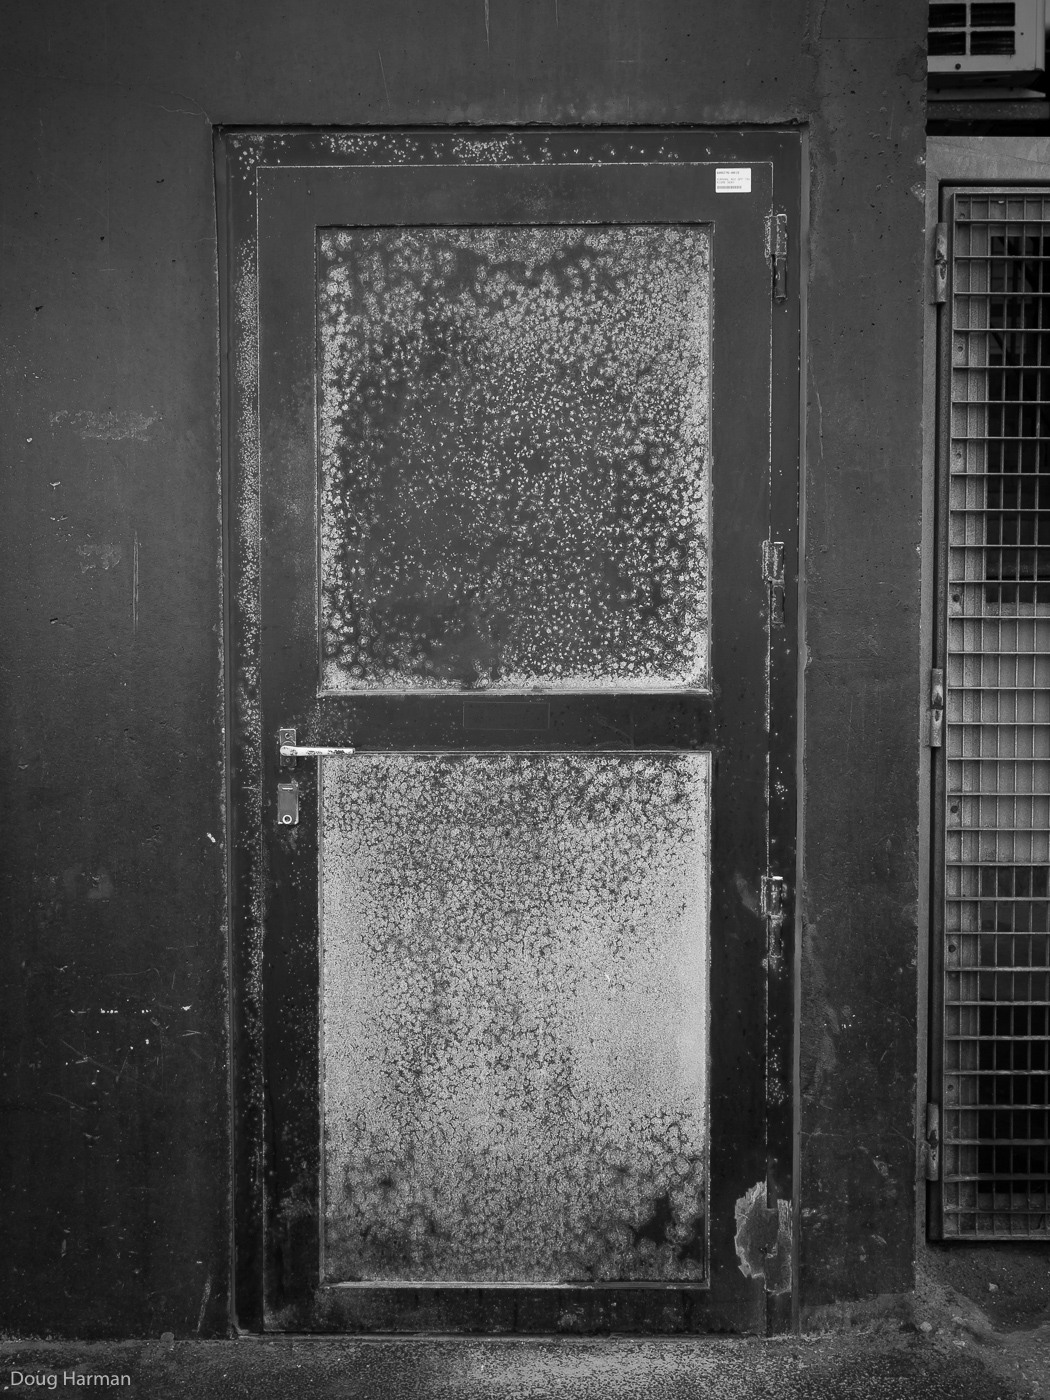 Metal Door. One of the doors photographed as part of my Doorways project, in Dunkirk, France.